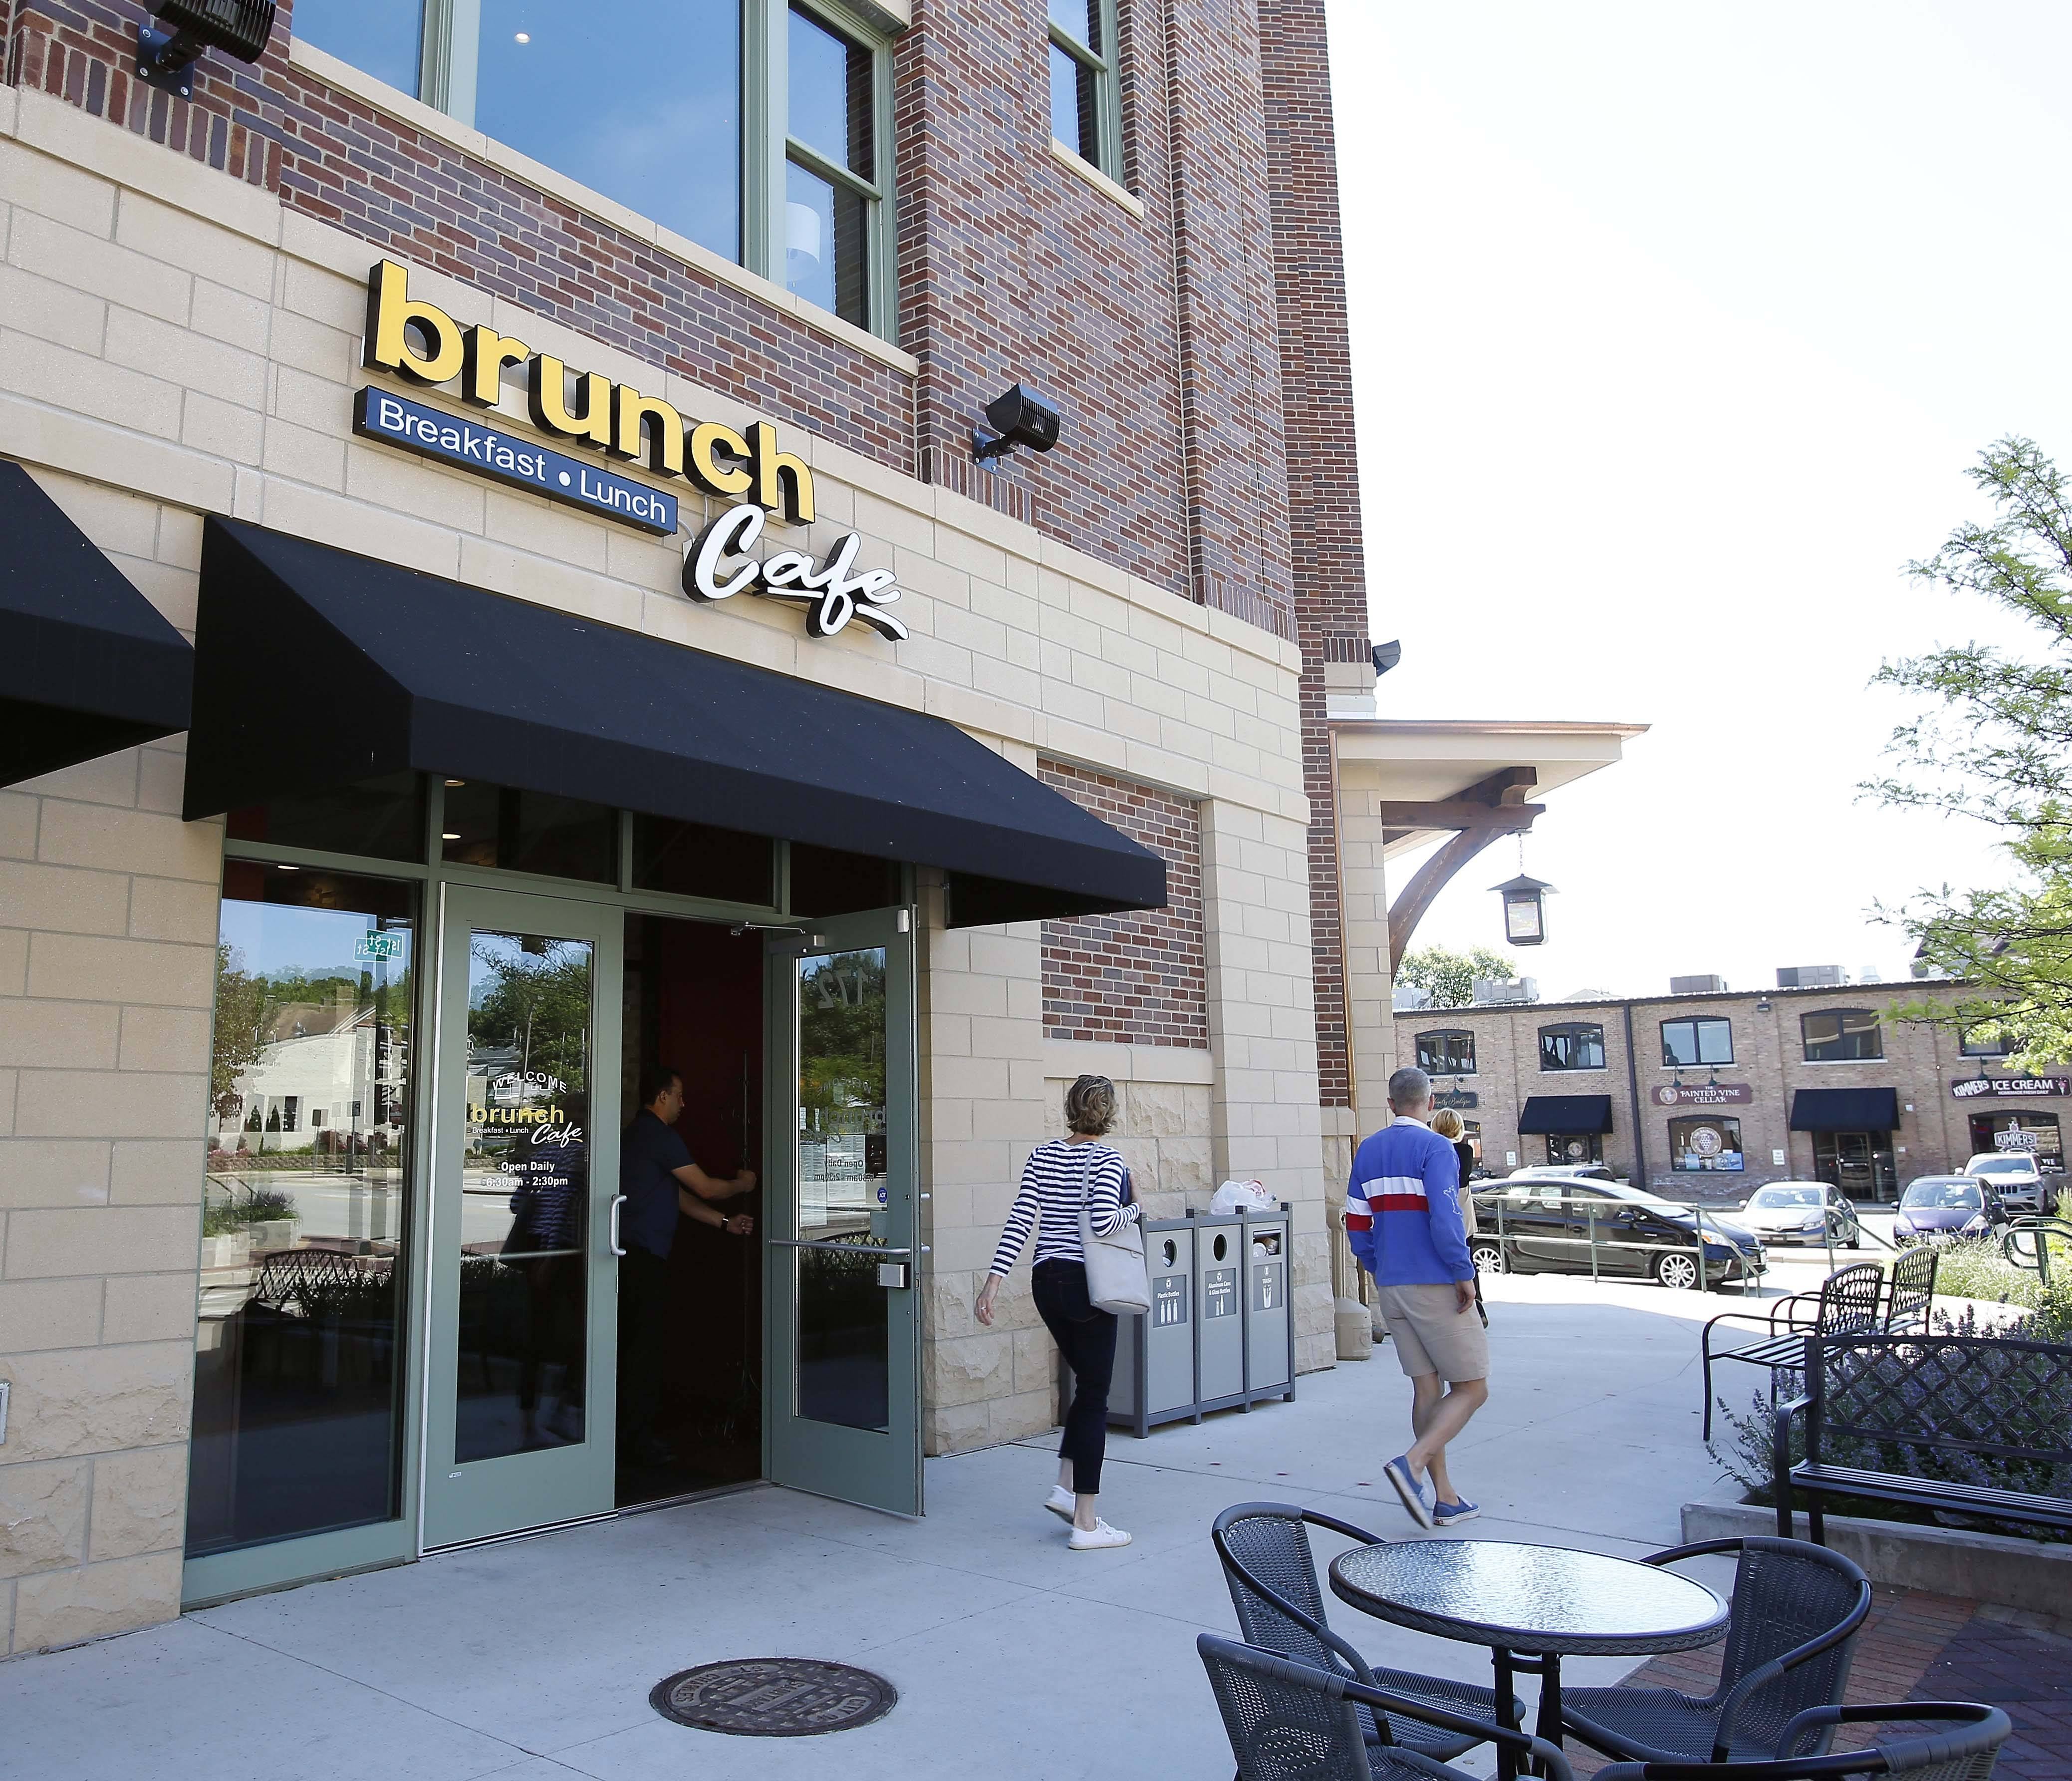 Brunch Cafe is in a new building that's part of the revitalization of downtown St. Charles.